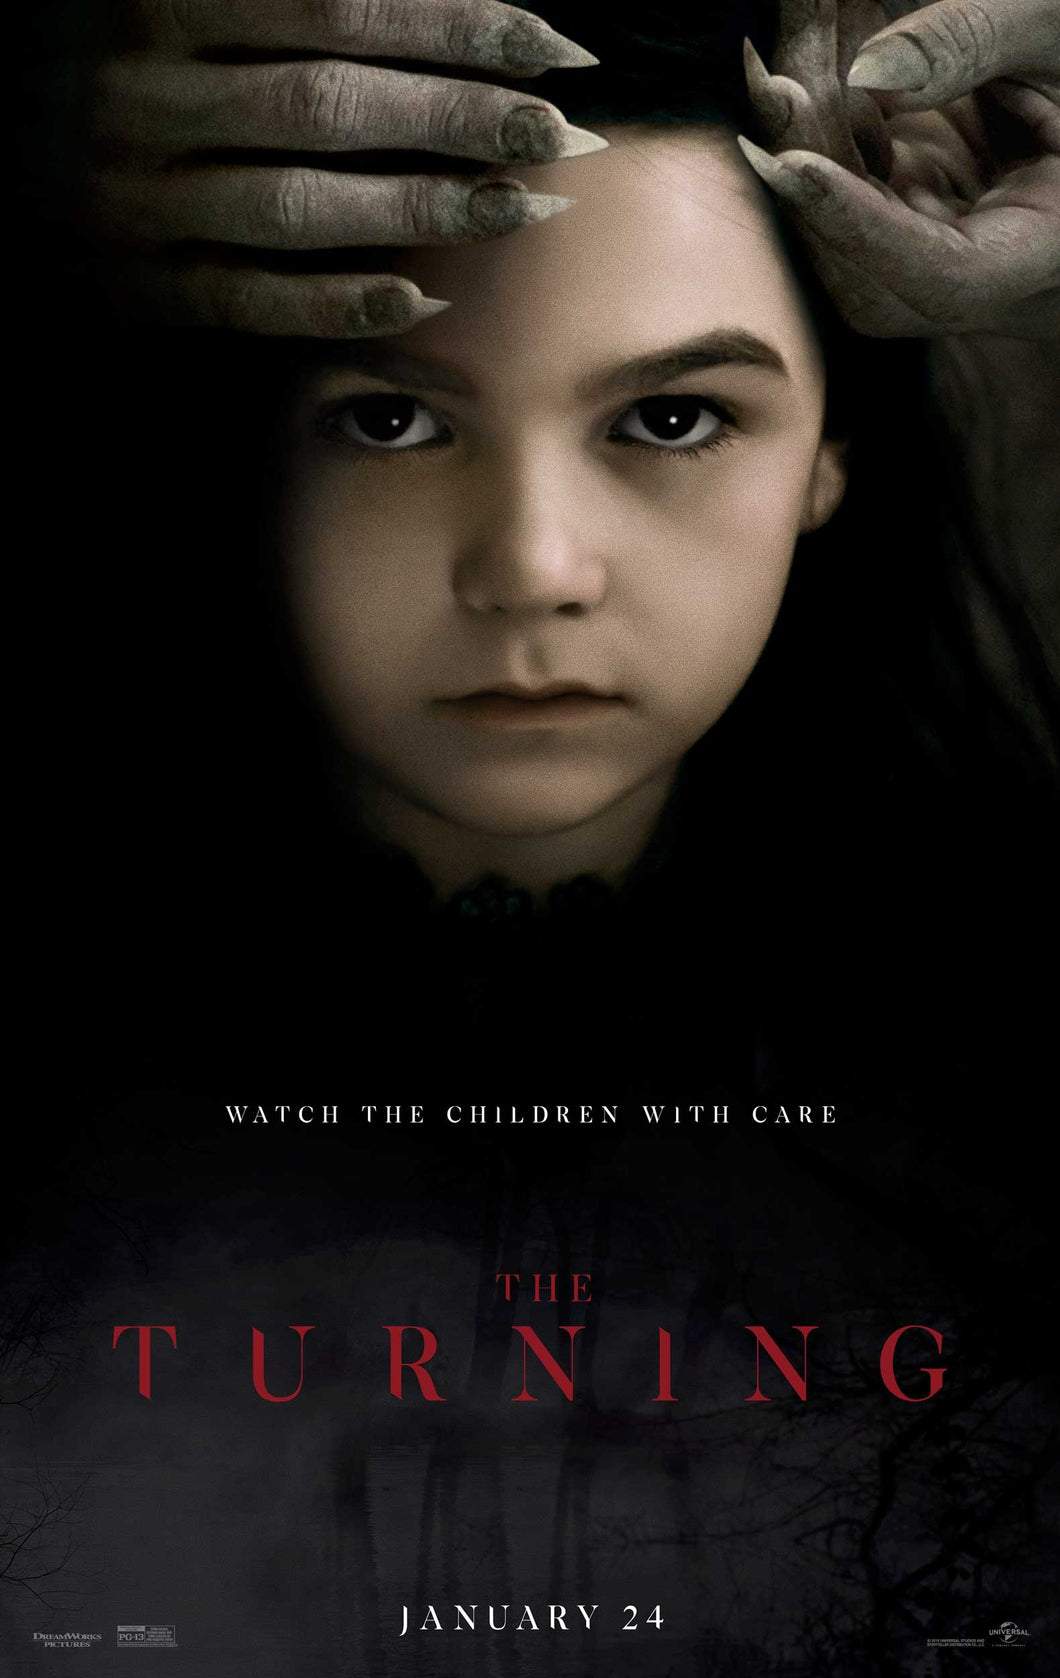 Poster Pelicula The turning